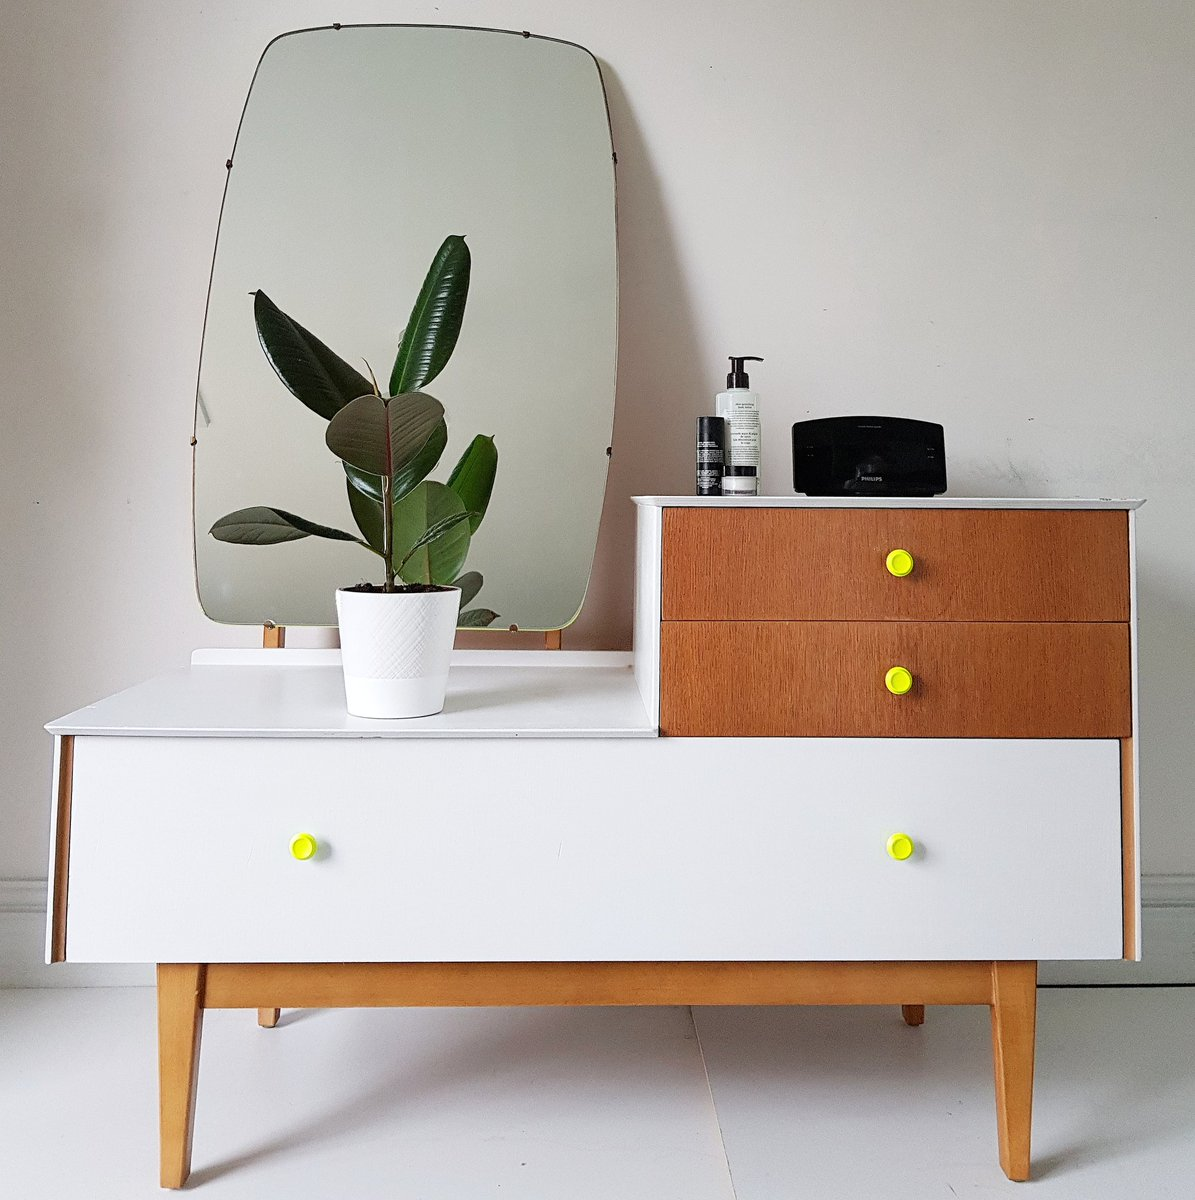 A bit of #midcentury chic with a flash of #neon! #POW #upcycled #leicestershire #maisieshouse<br>http://pic.twitter.com/QQoOqDtoeB